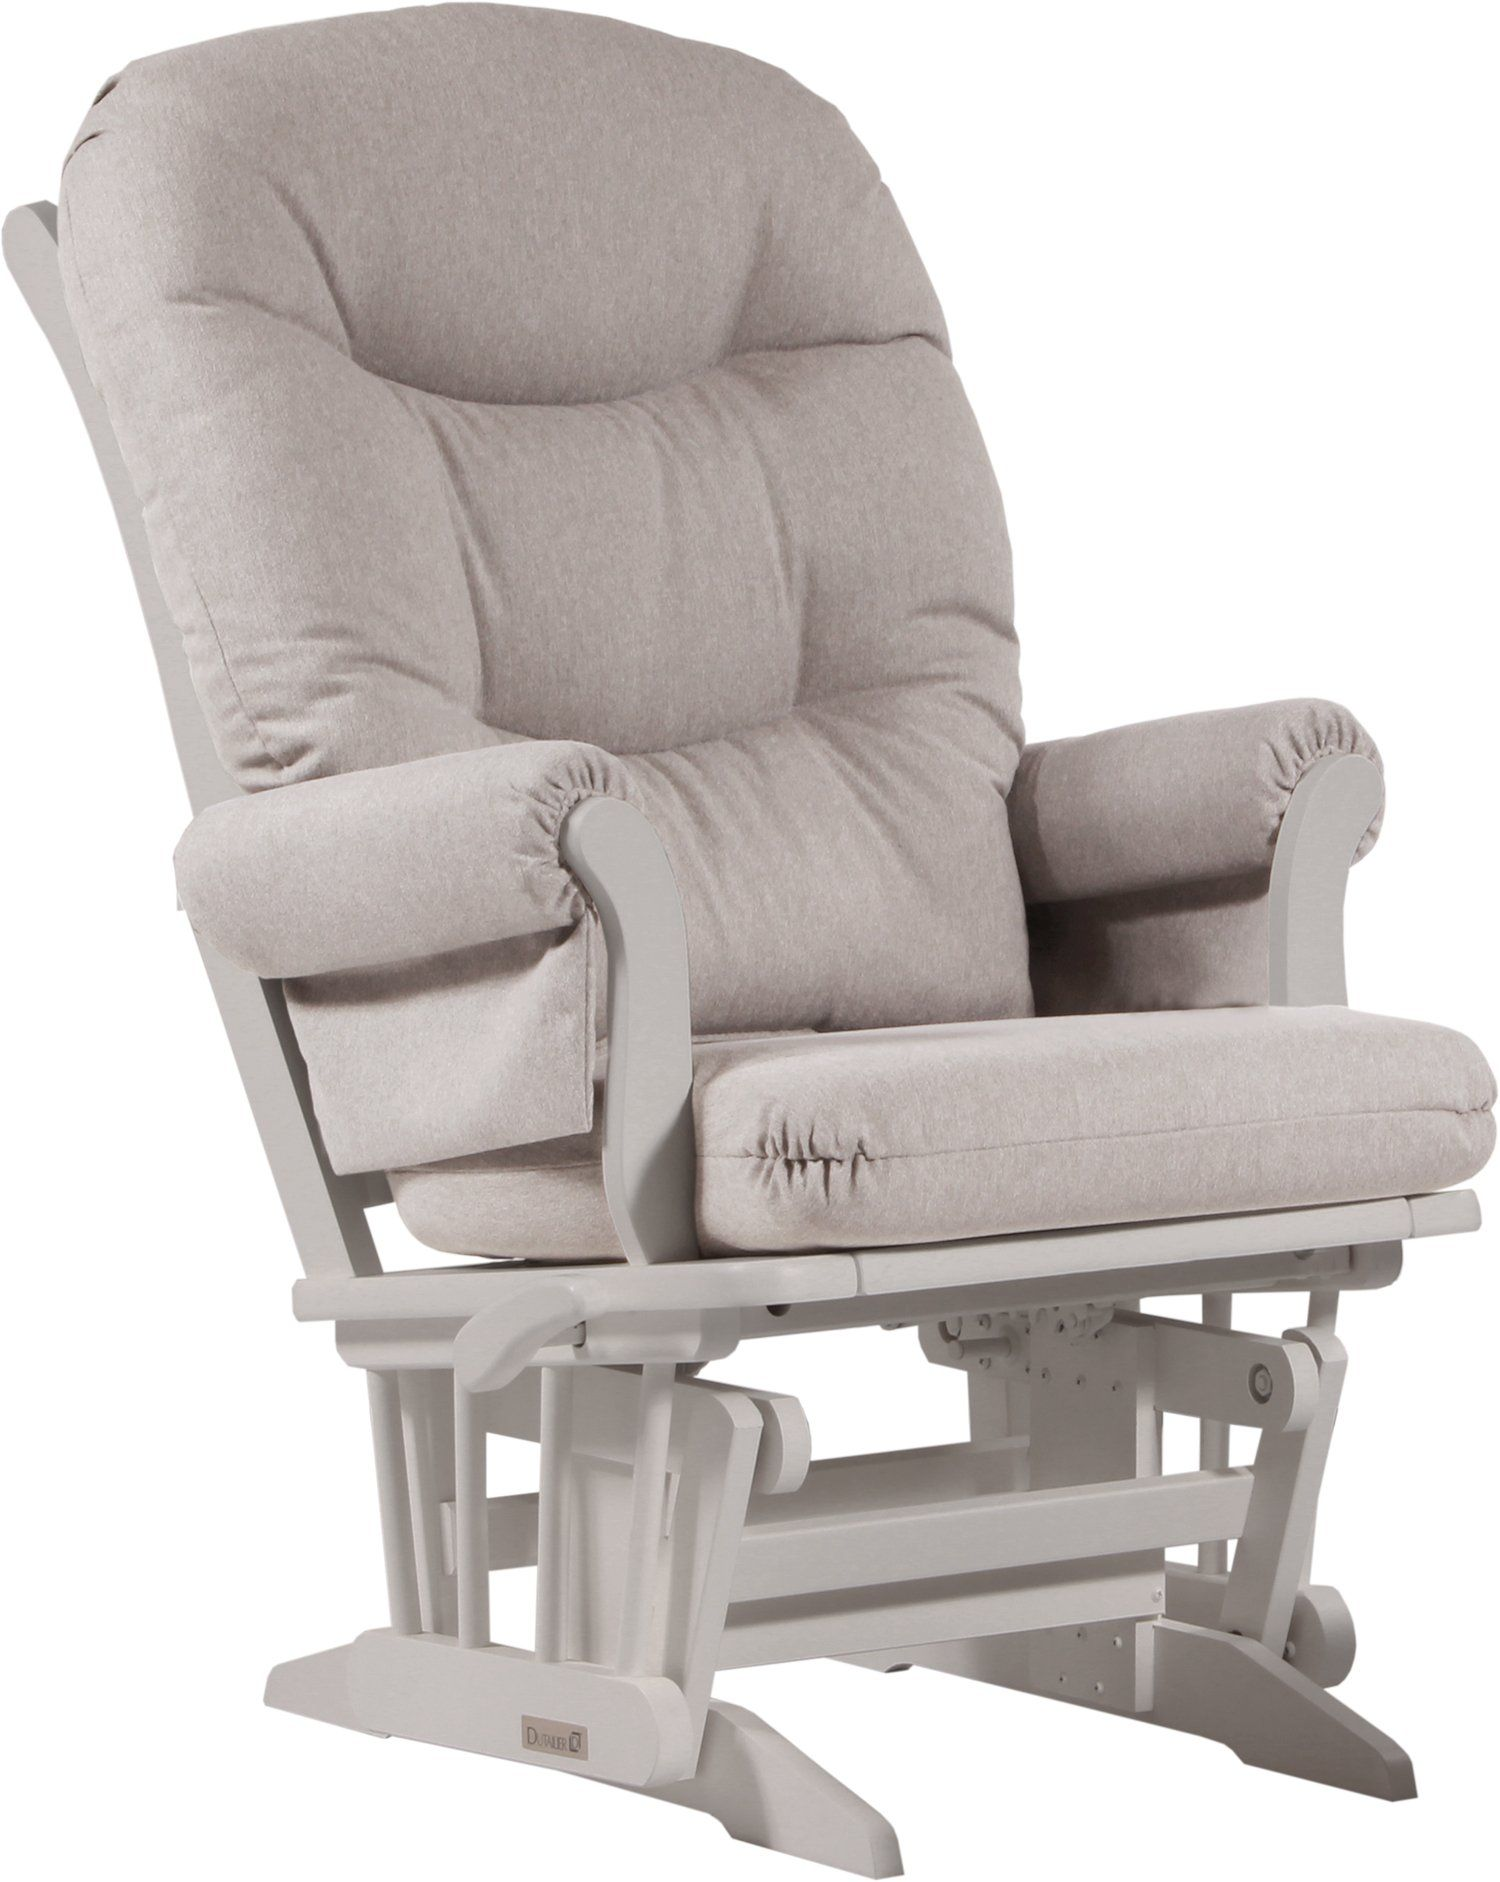 Dutailier Sleigh Glider Multiposition And Recline, Light Grey